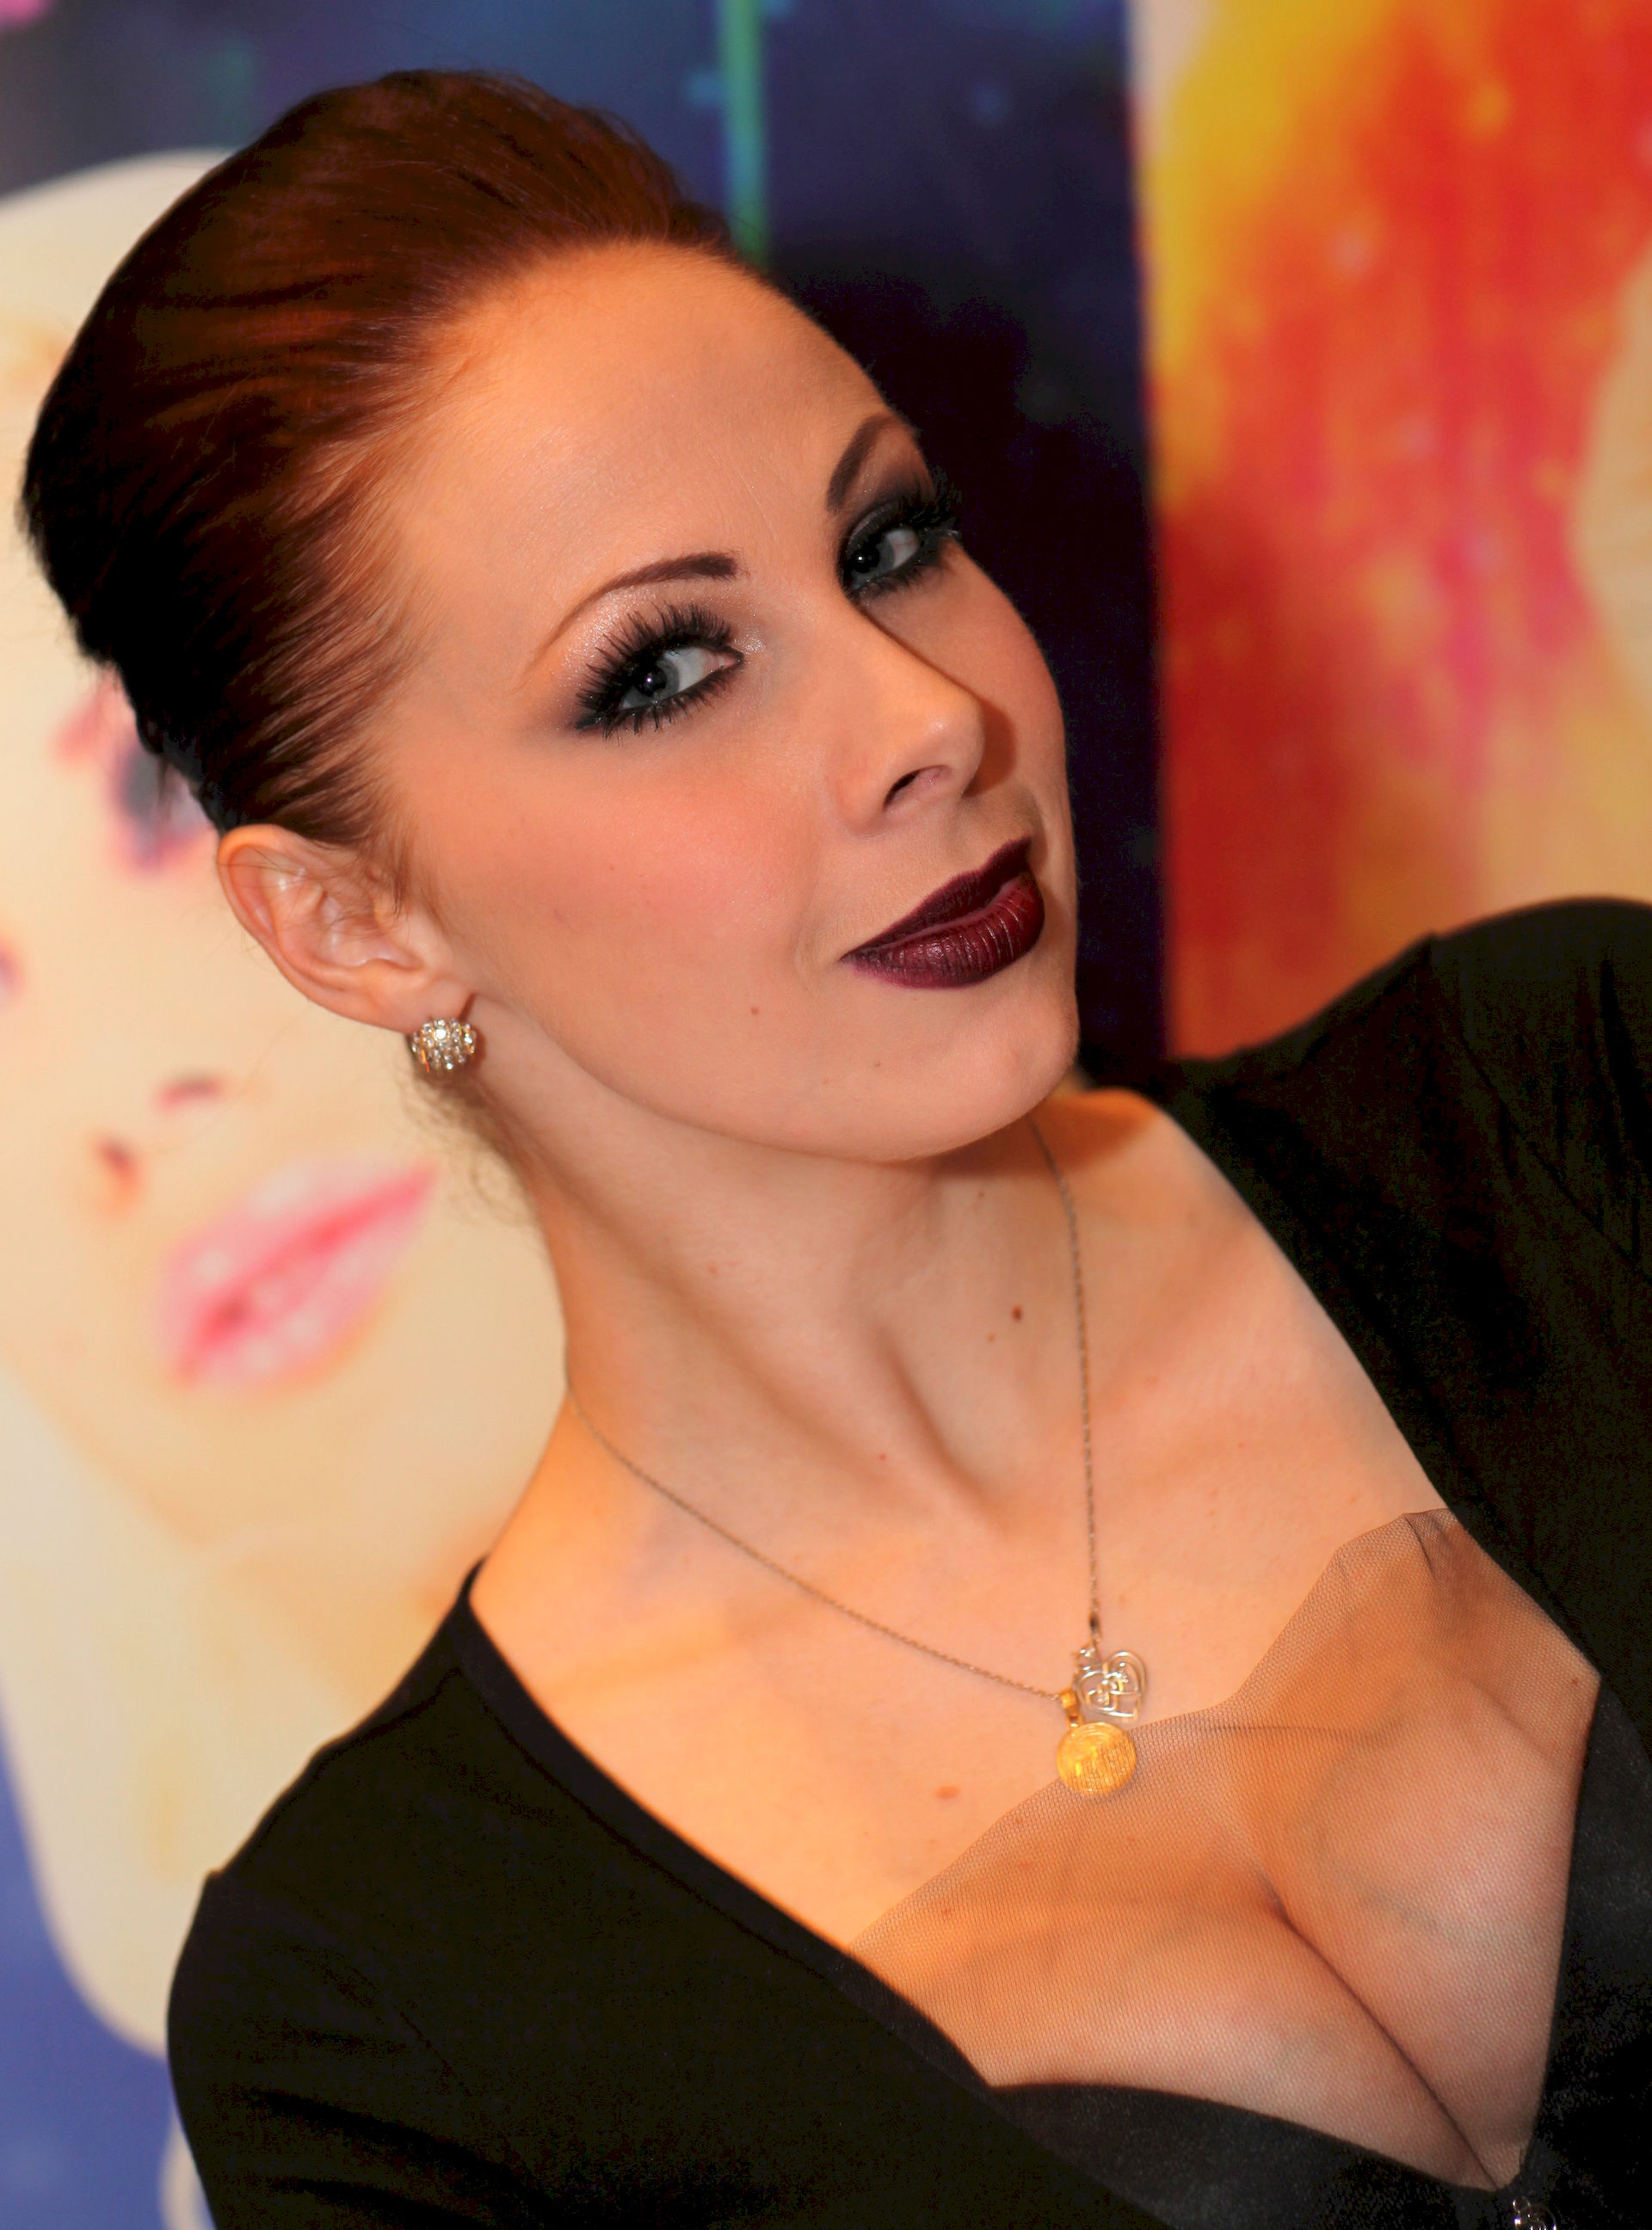 Photo of Gianna Michaels: American pornographic actress & model